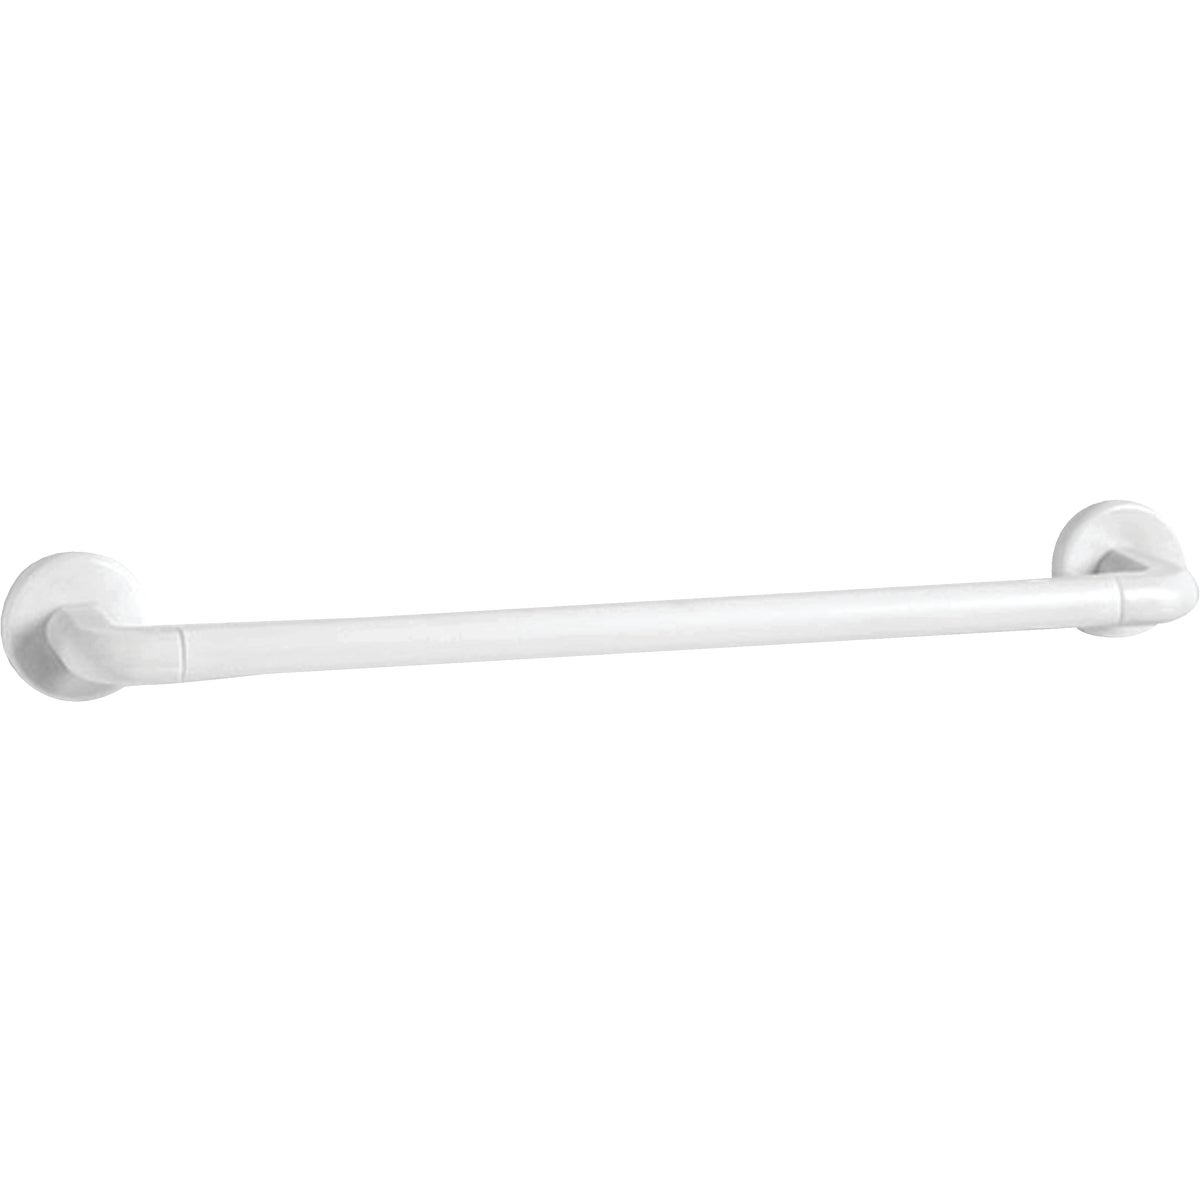 "18"" TOWEL BAR - 22830101.24 by Homz Products  Bath"